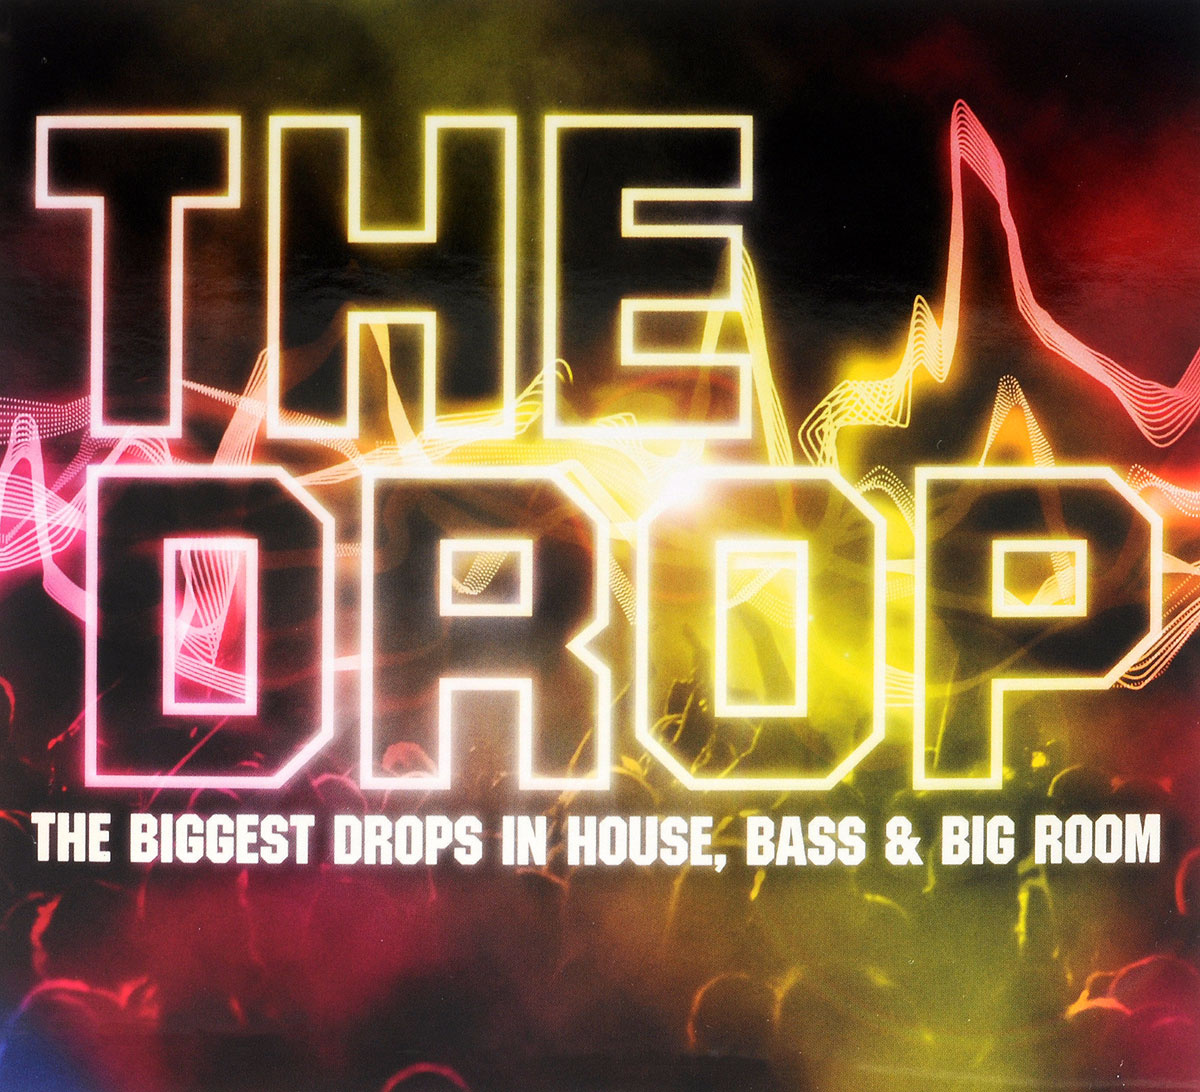 The Drop:The Biggest Drops In House, Bass & Big Room (3 CD) #1